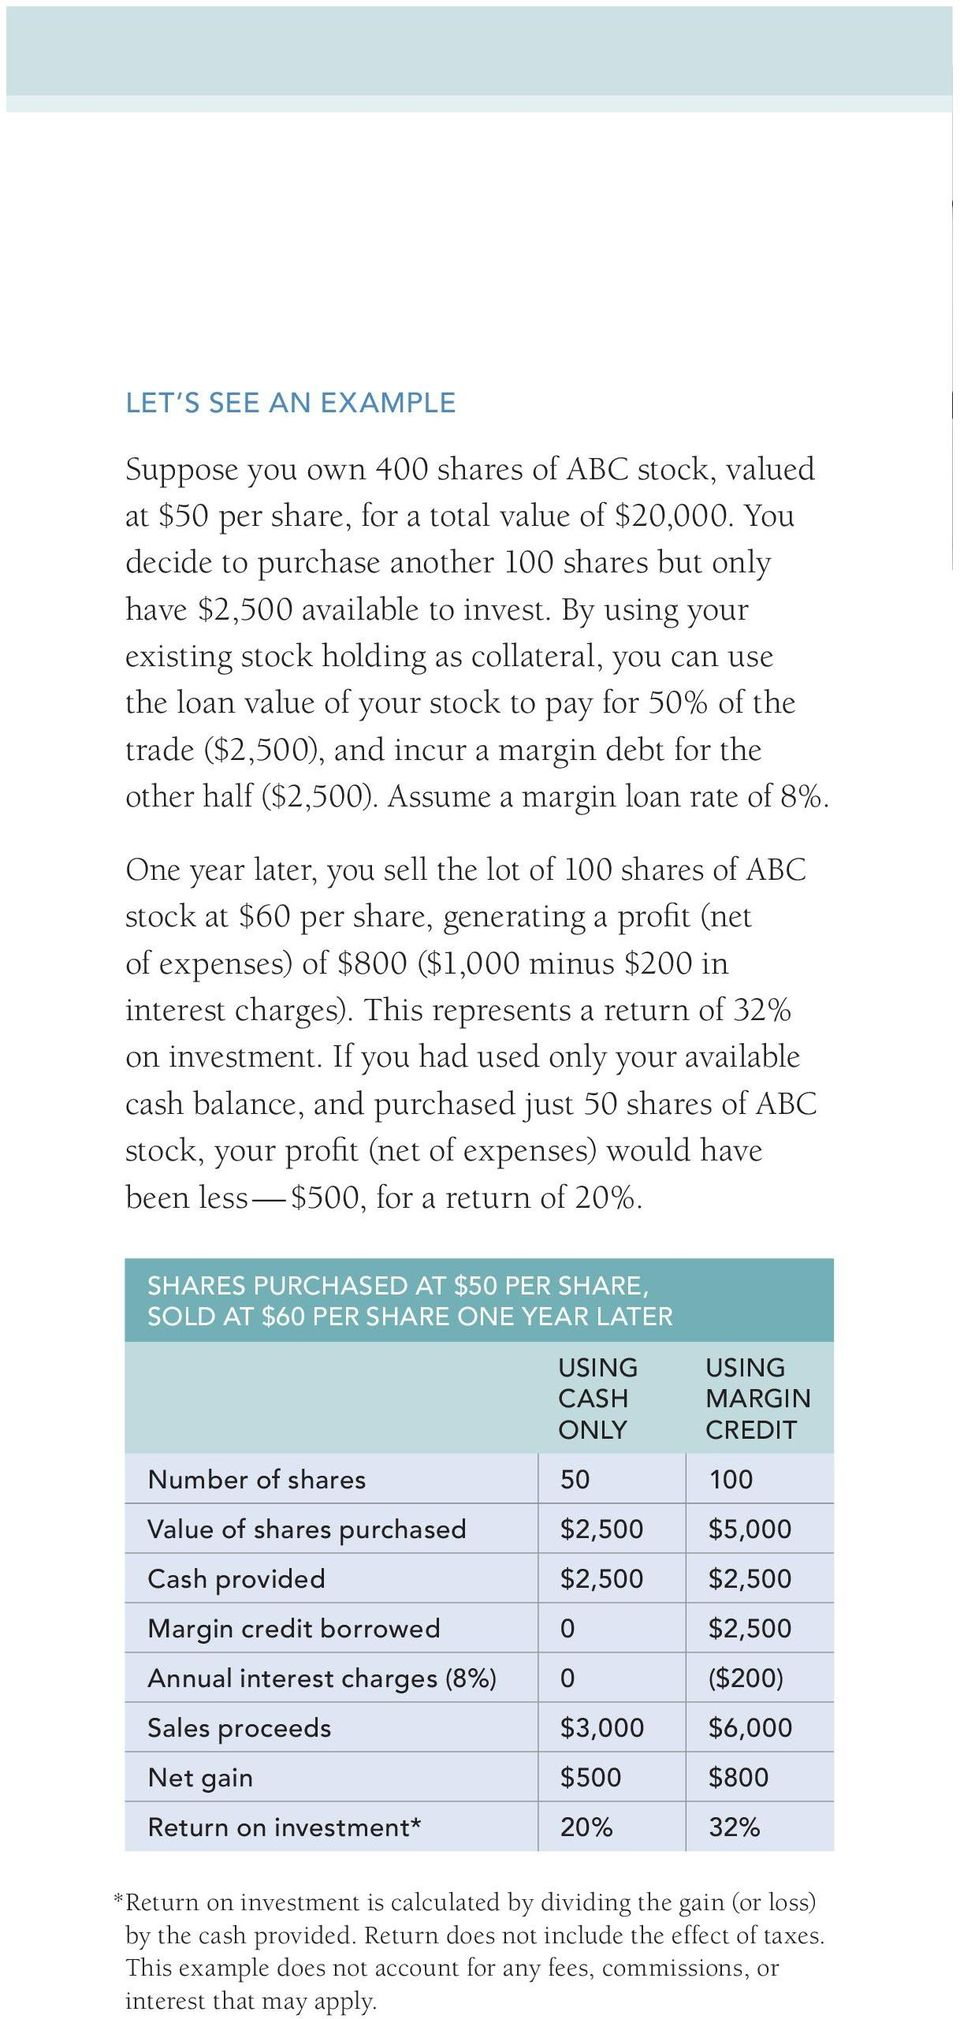 Assume a margin loan rate of 8%. One year later, you sell the lot of 100 shares of ABC stock at $60 per share, generating a profit (net of expenses) of $800 ($1,000 minus $200 in interest charges).